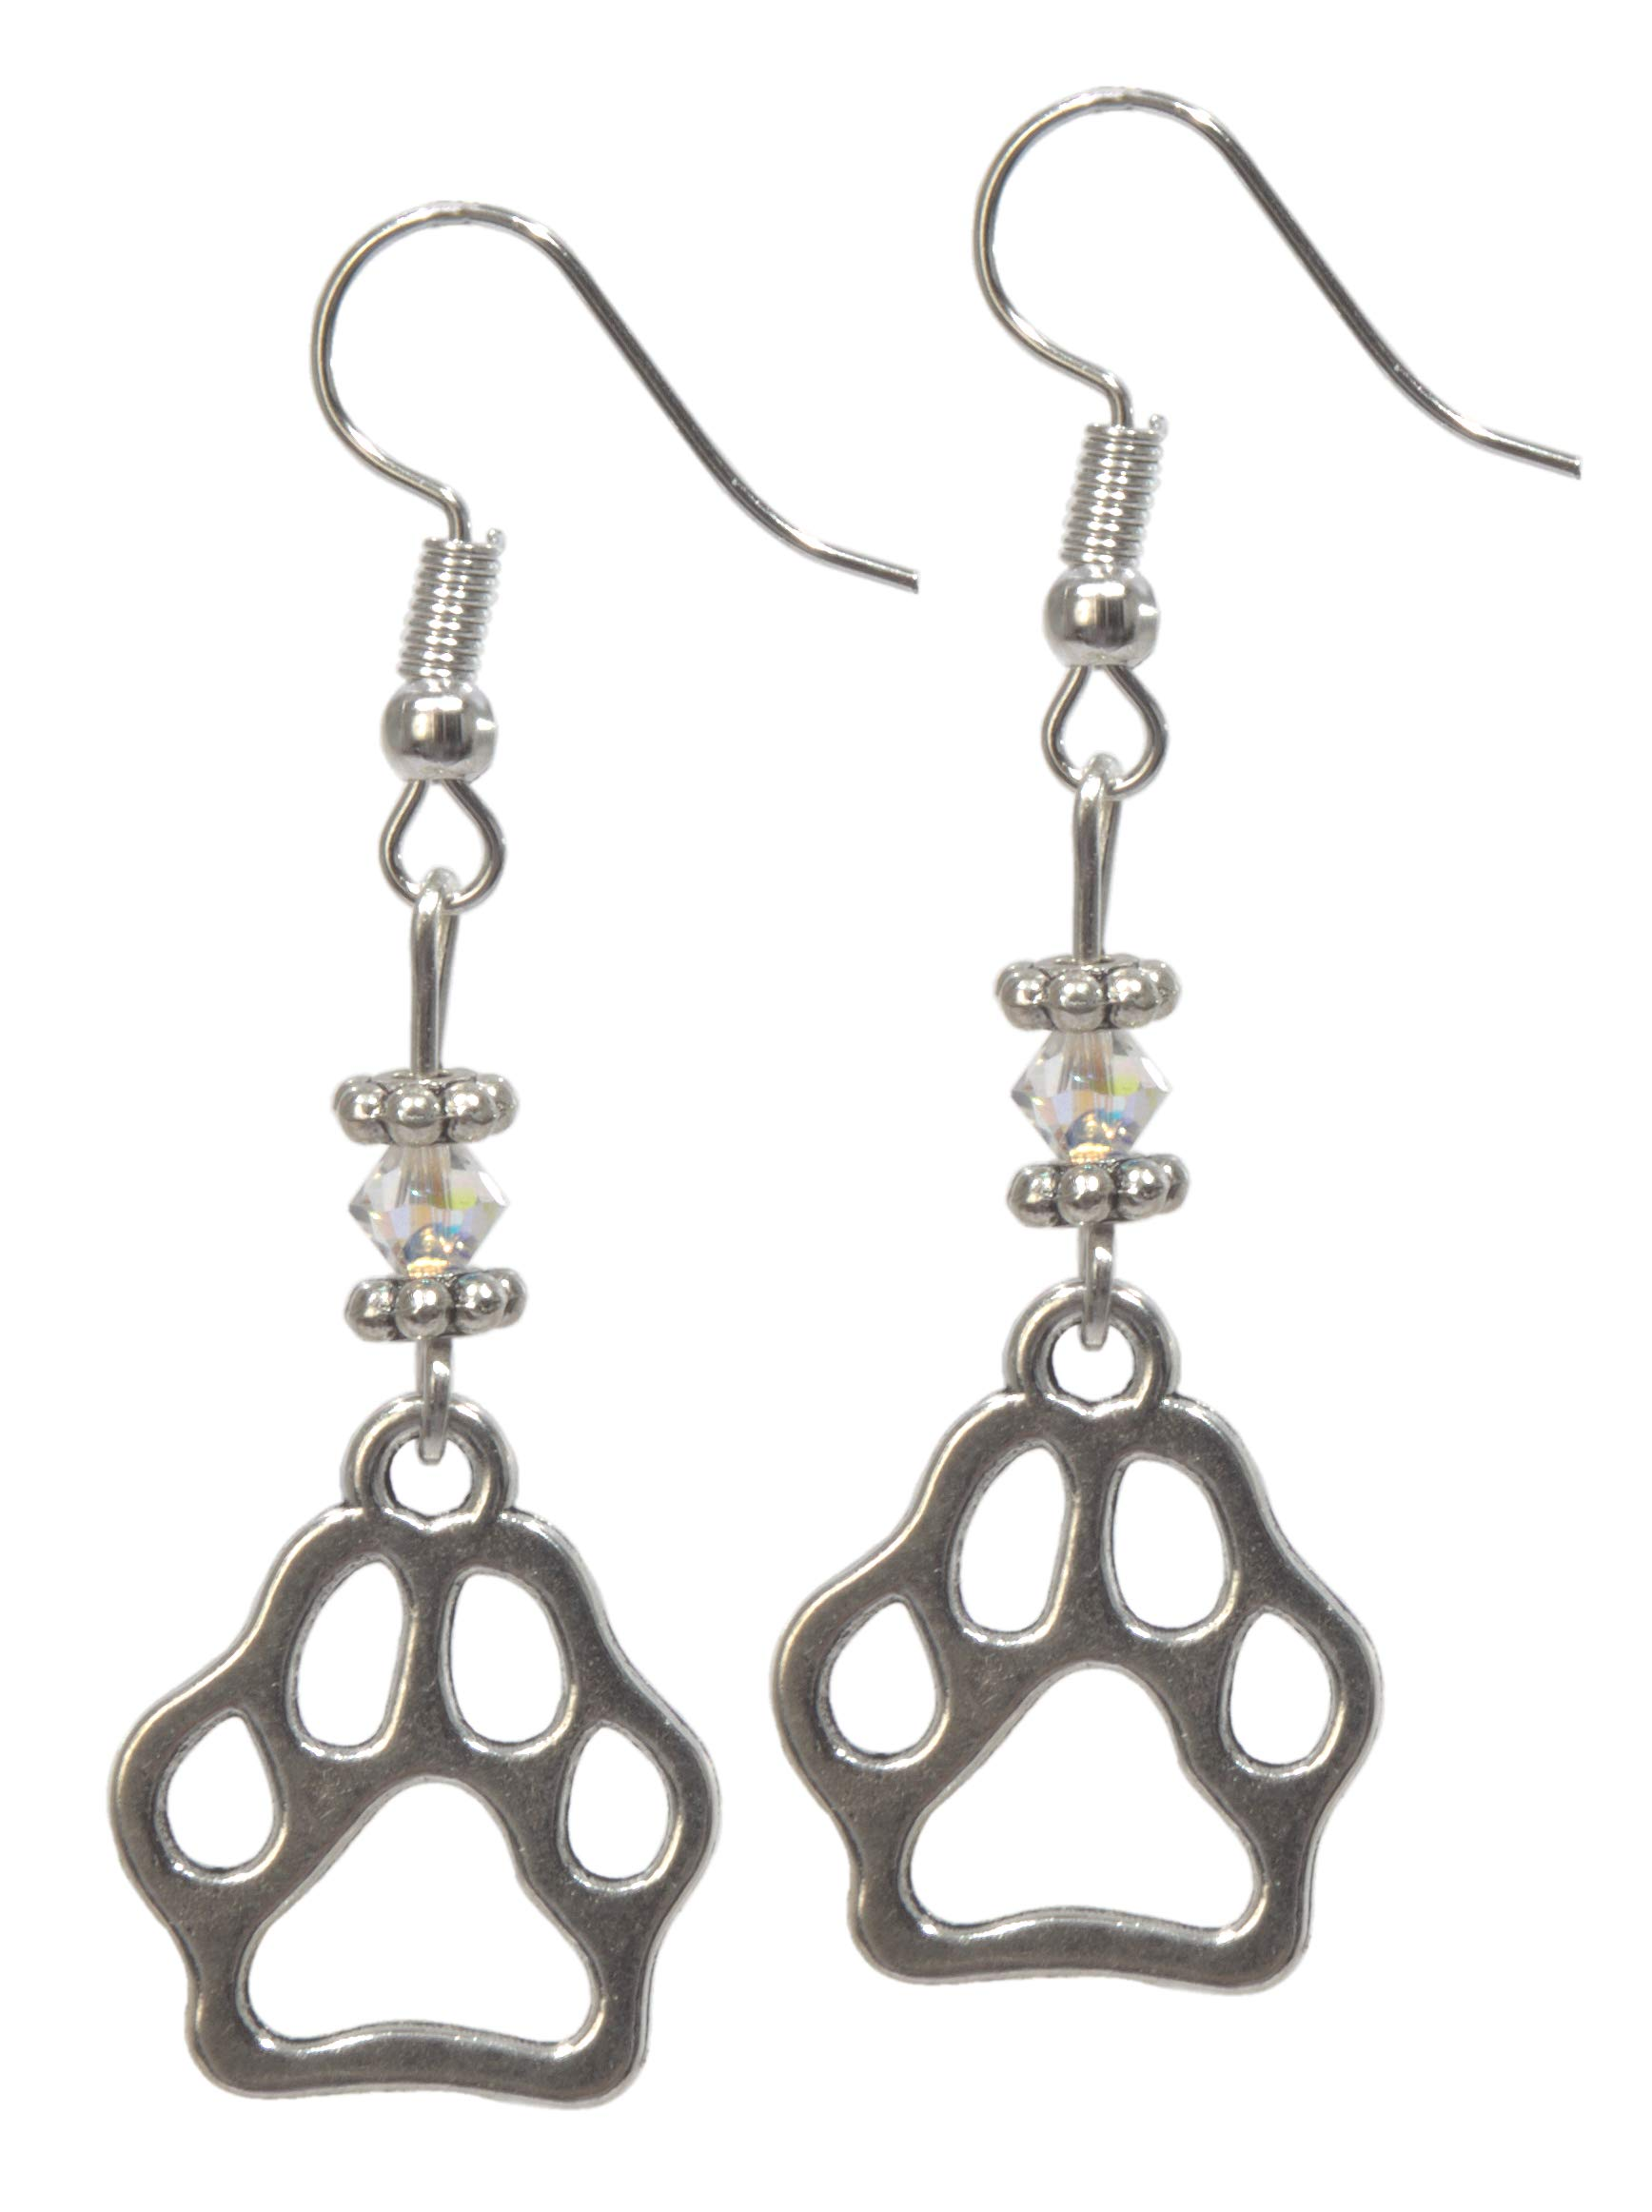 ViciBeads Earrings, Silver Colored Paw Pendant with Austrian Crystal Dangle Earring Bag